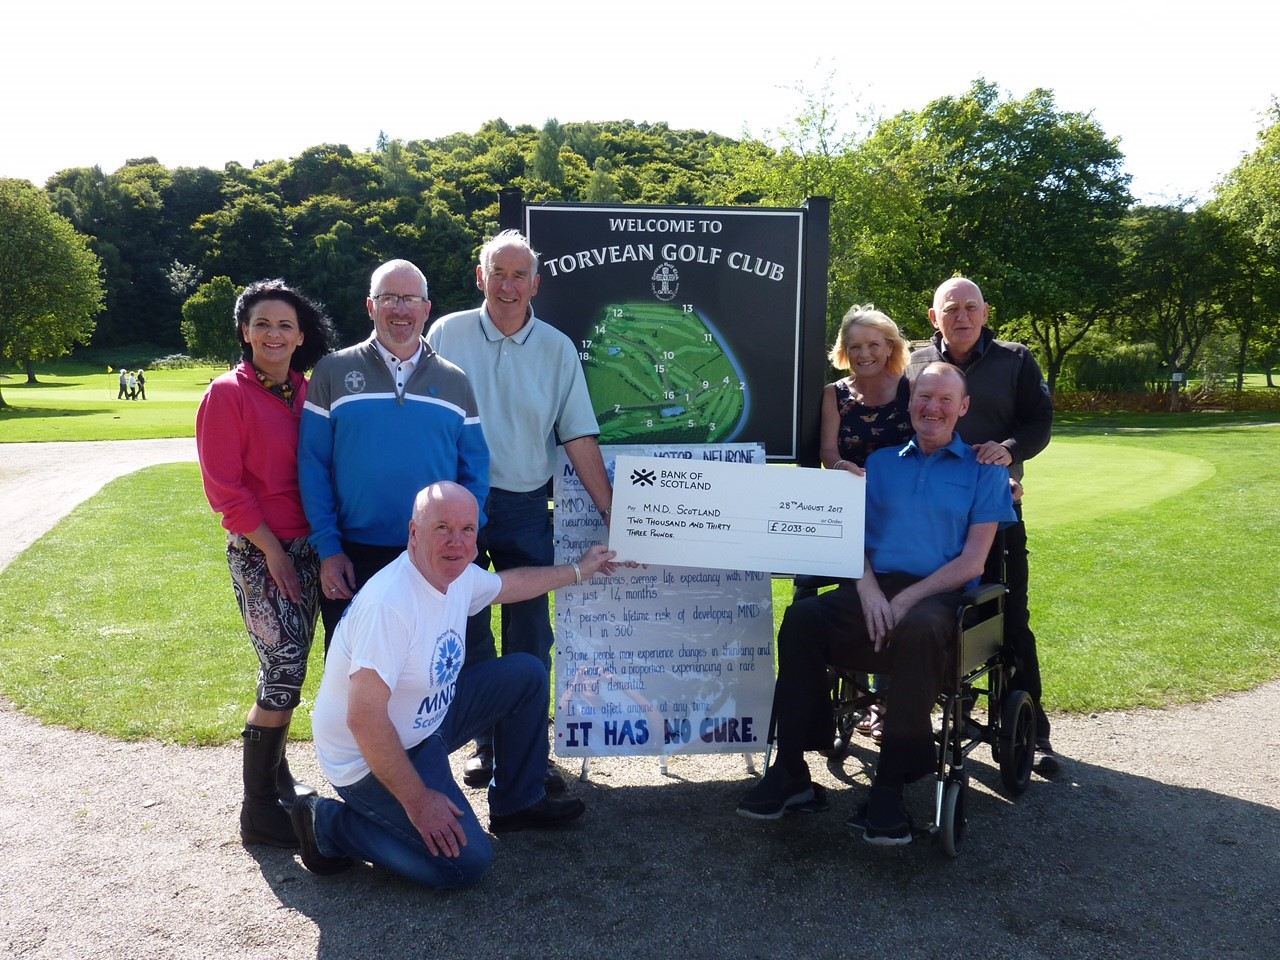 Inverness golf club raises £2,000 after member diagnosed